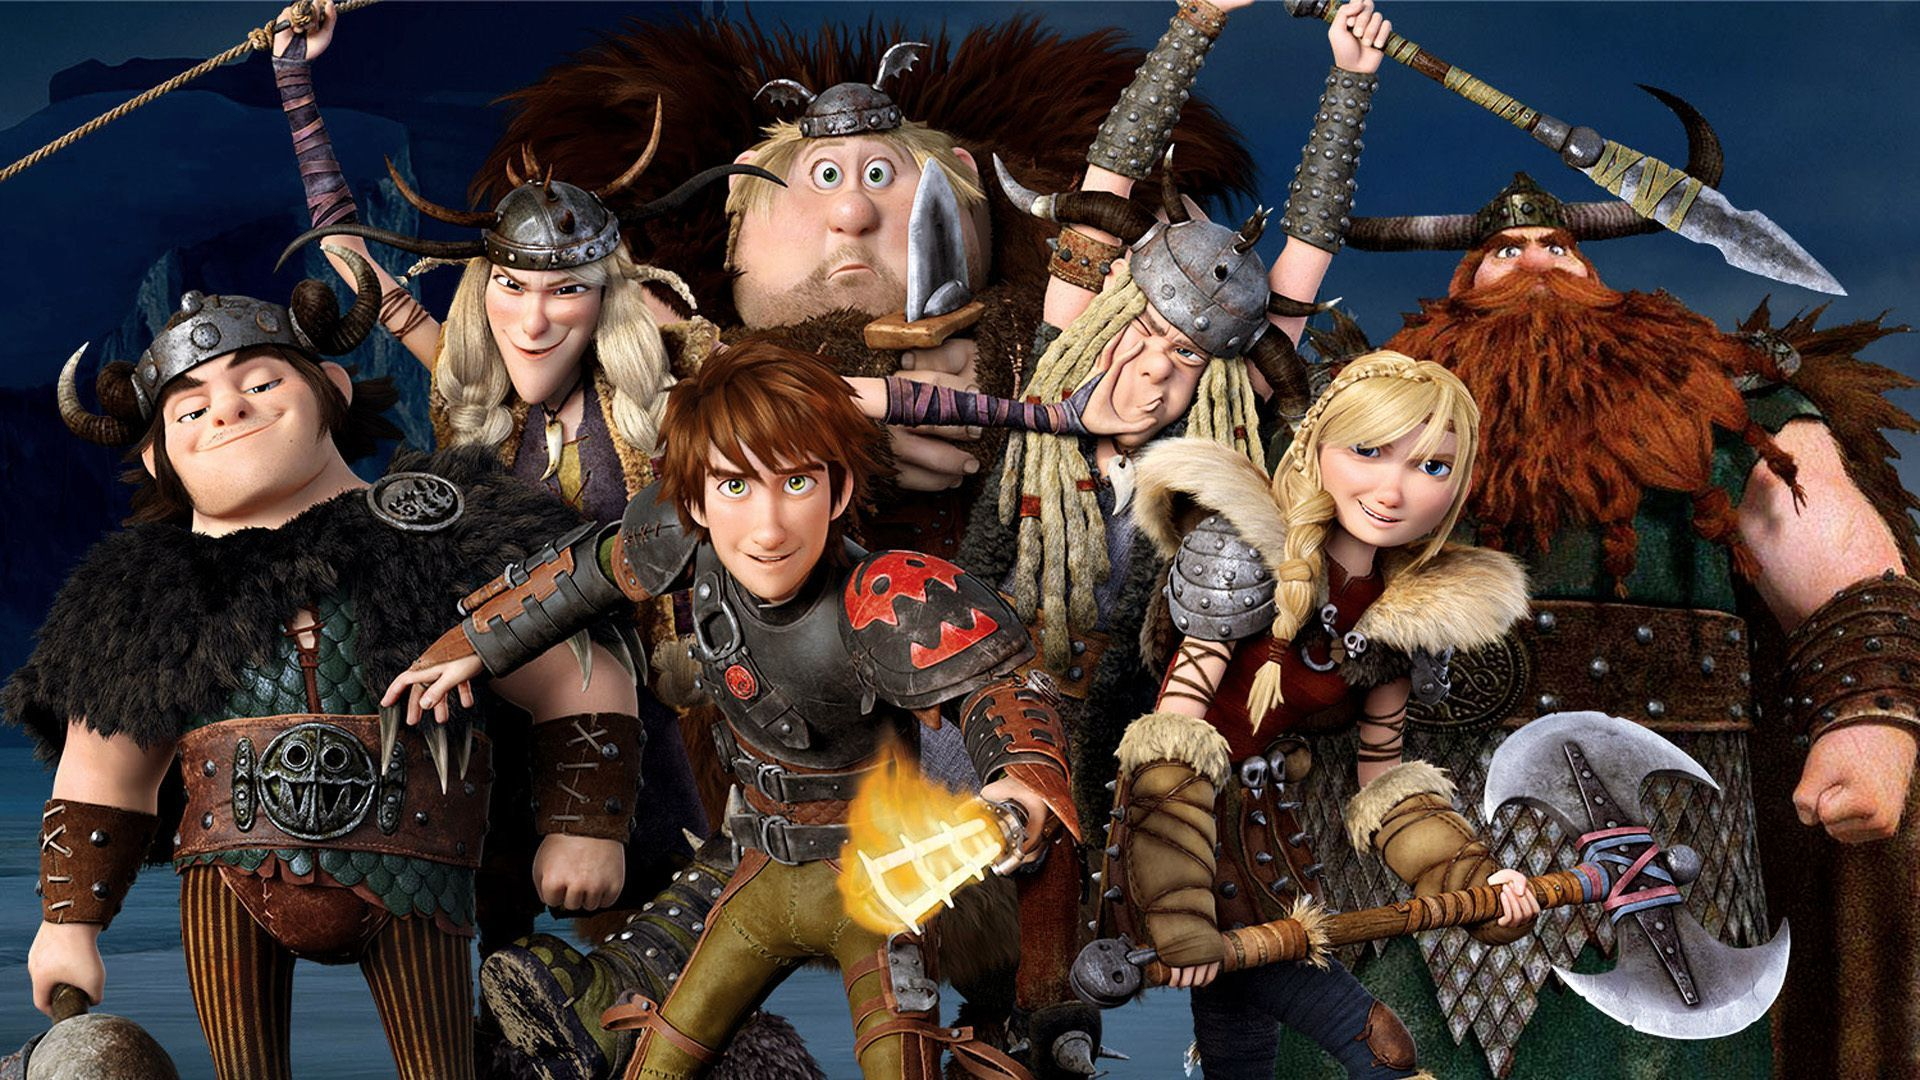 How to train your dragon wallpapers rollo 3 pinterest dragons how to train your dragon wallpapers ccuart Image collections